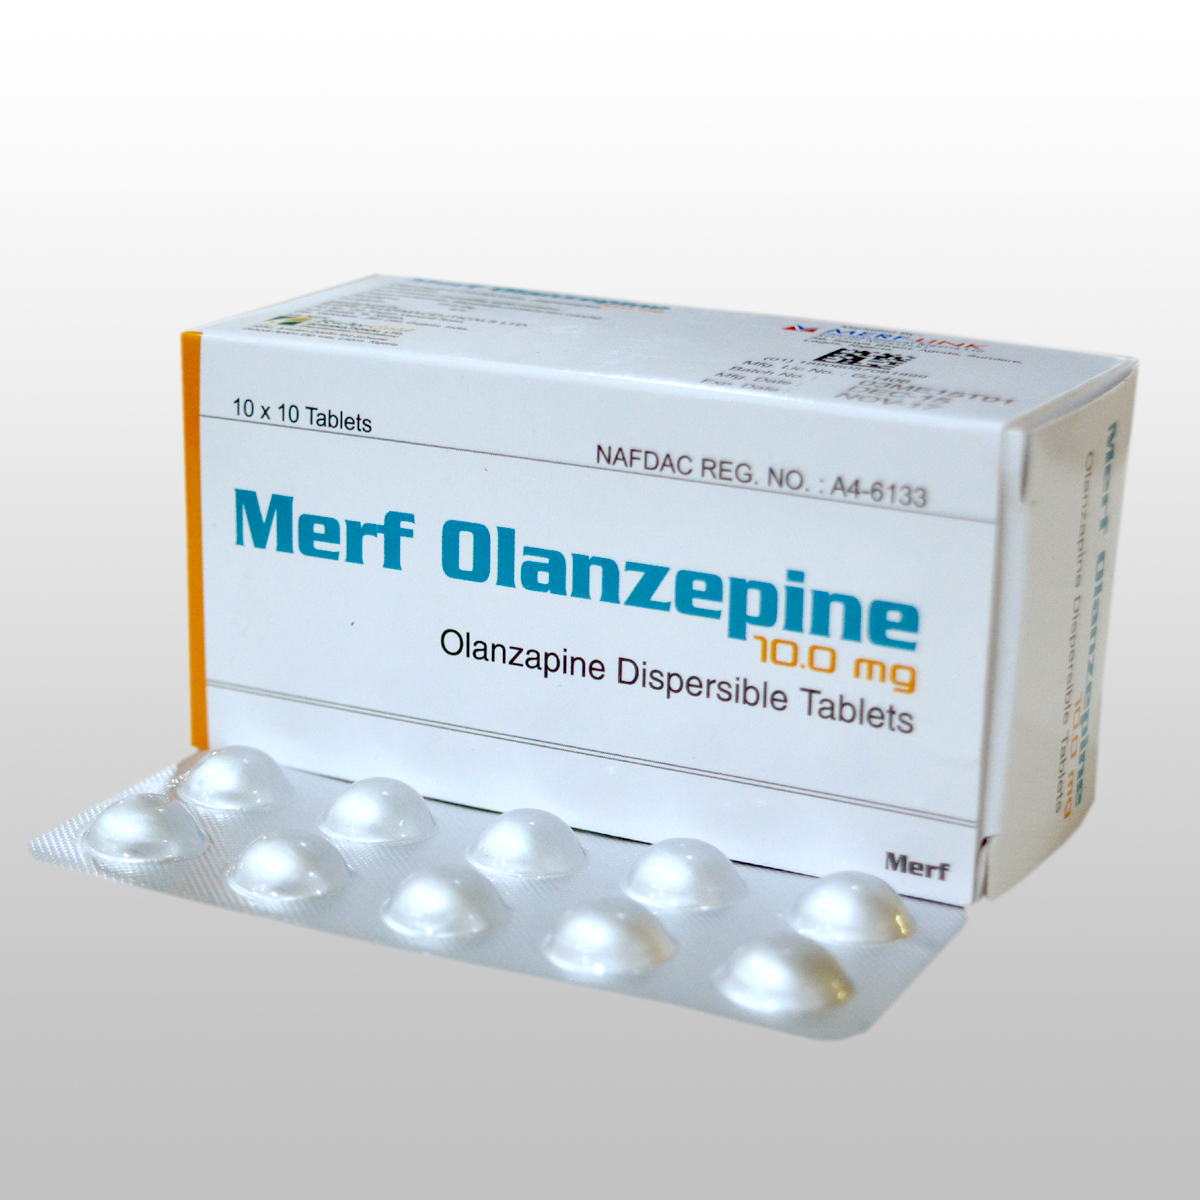 OLANZEPINE DISPERSIBLE TABLETS  10 mg